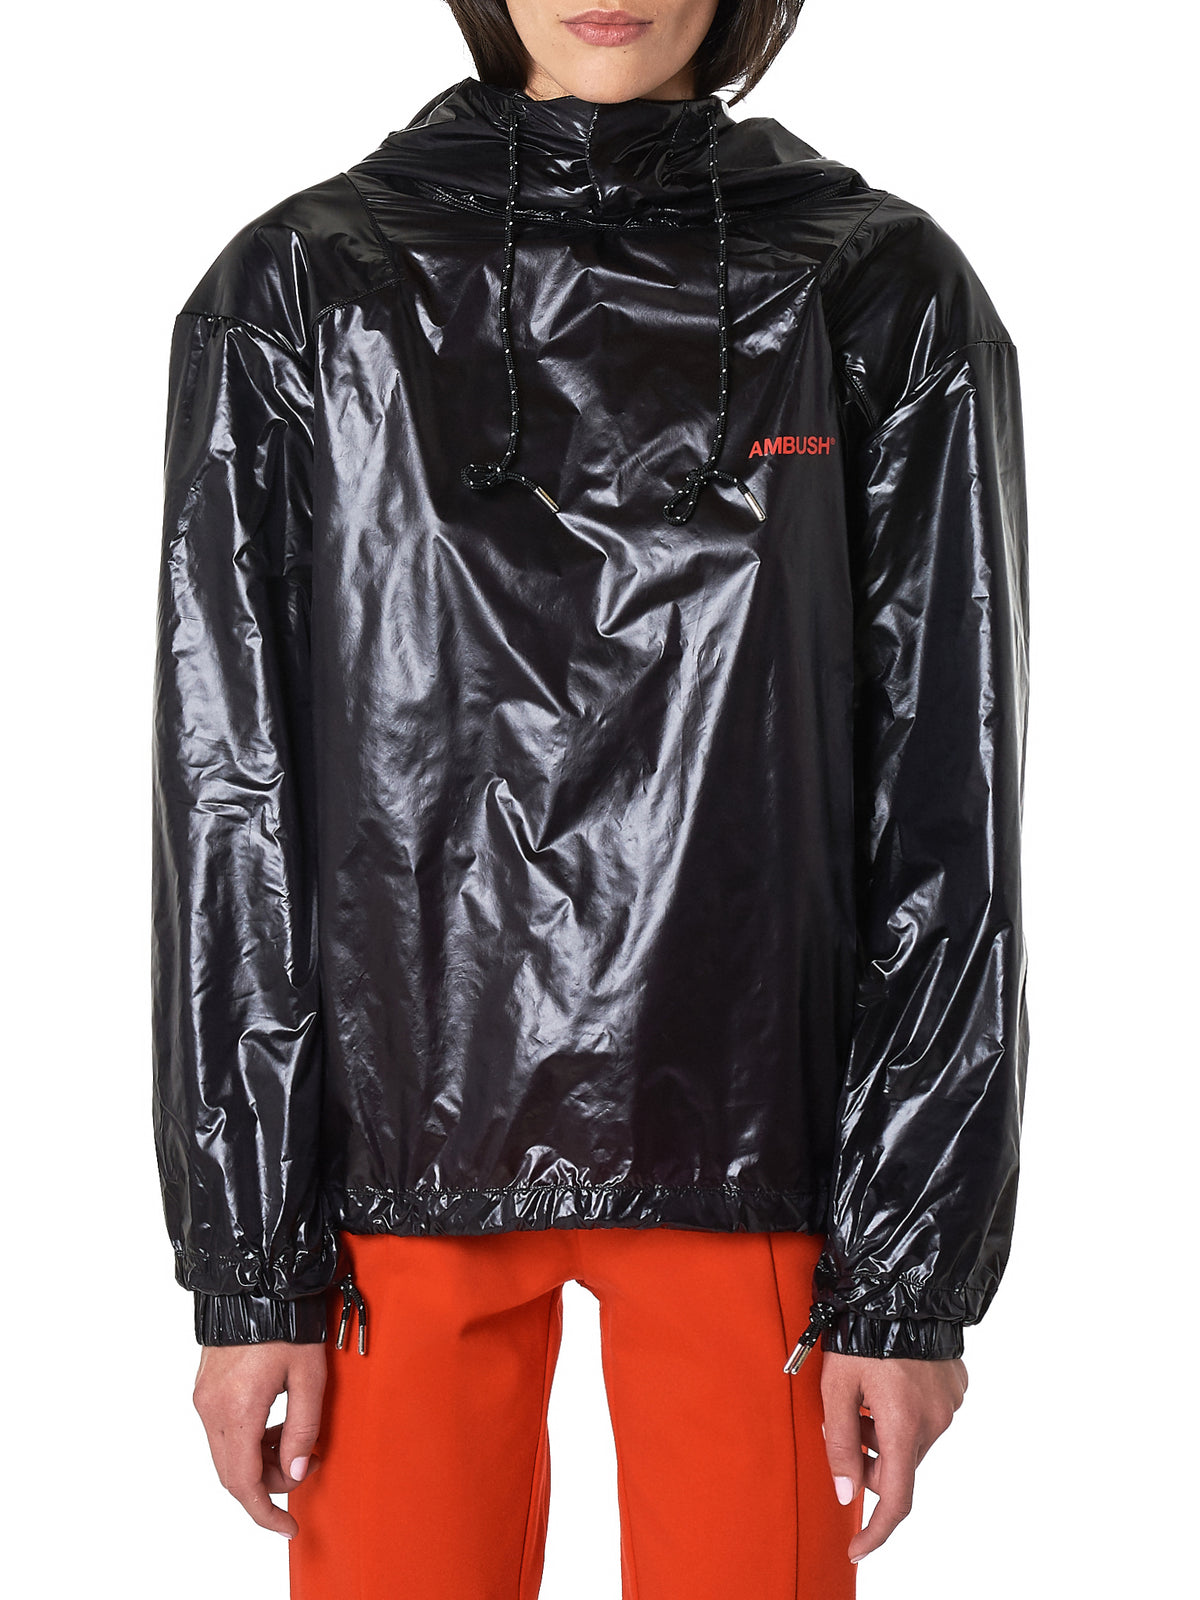 Geometric Shoulder Rain Jacket (AMBLS115-BLACK)